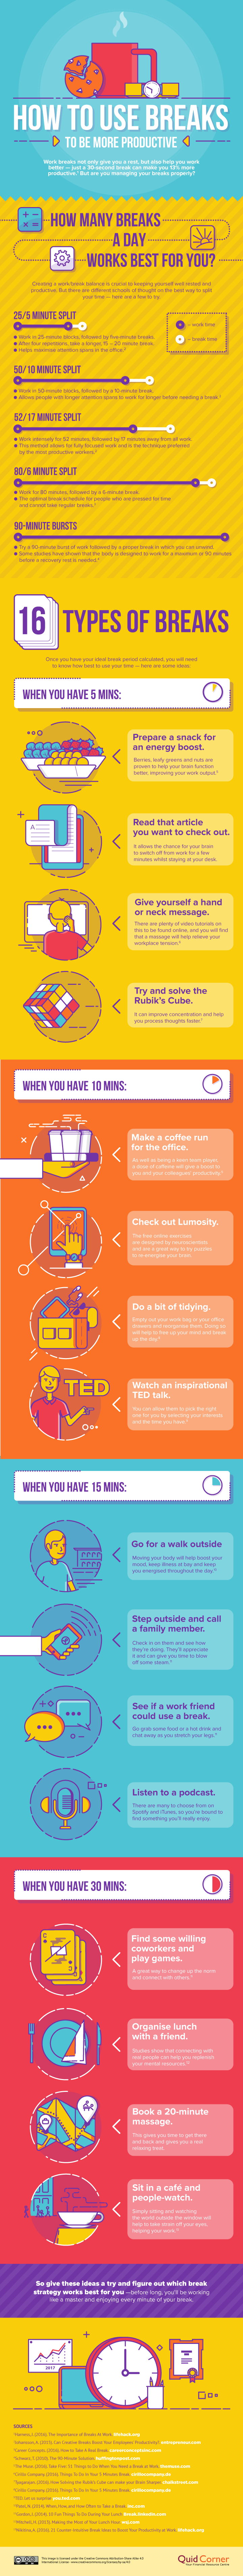 How to Use Breaks to Be More Productive #Infographic